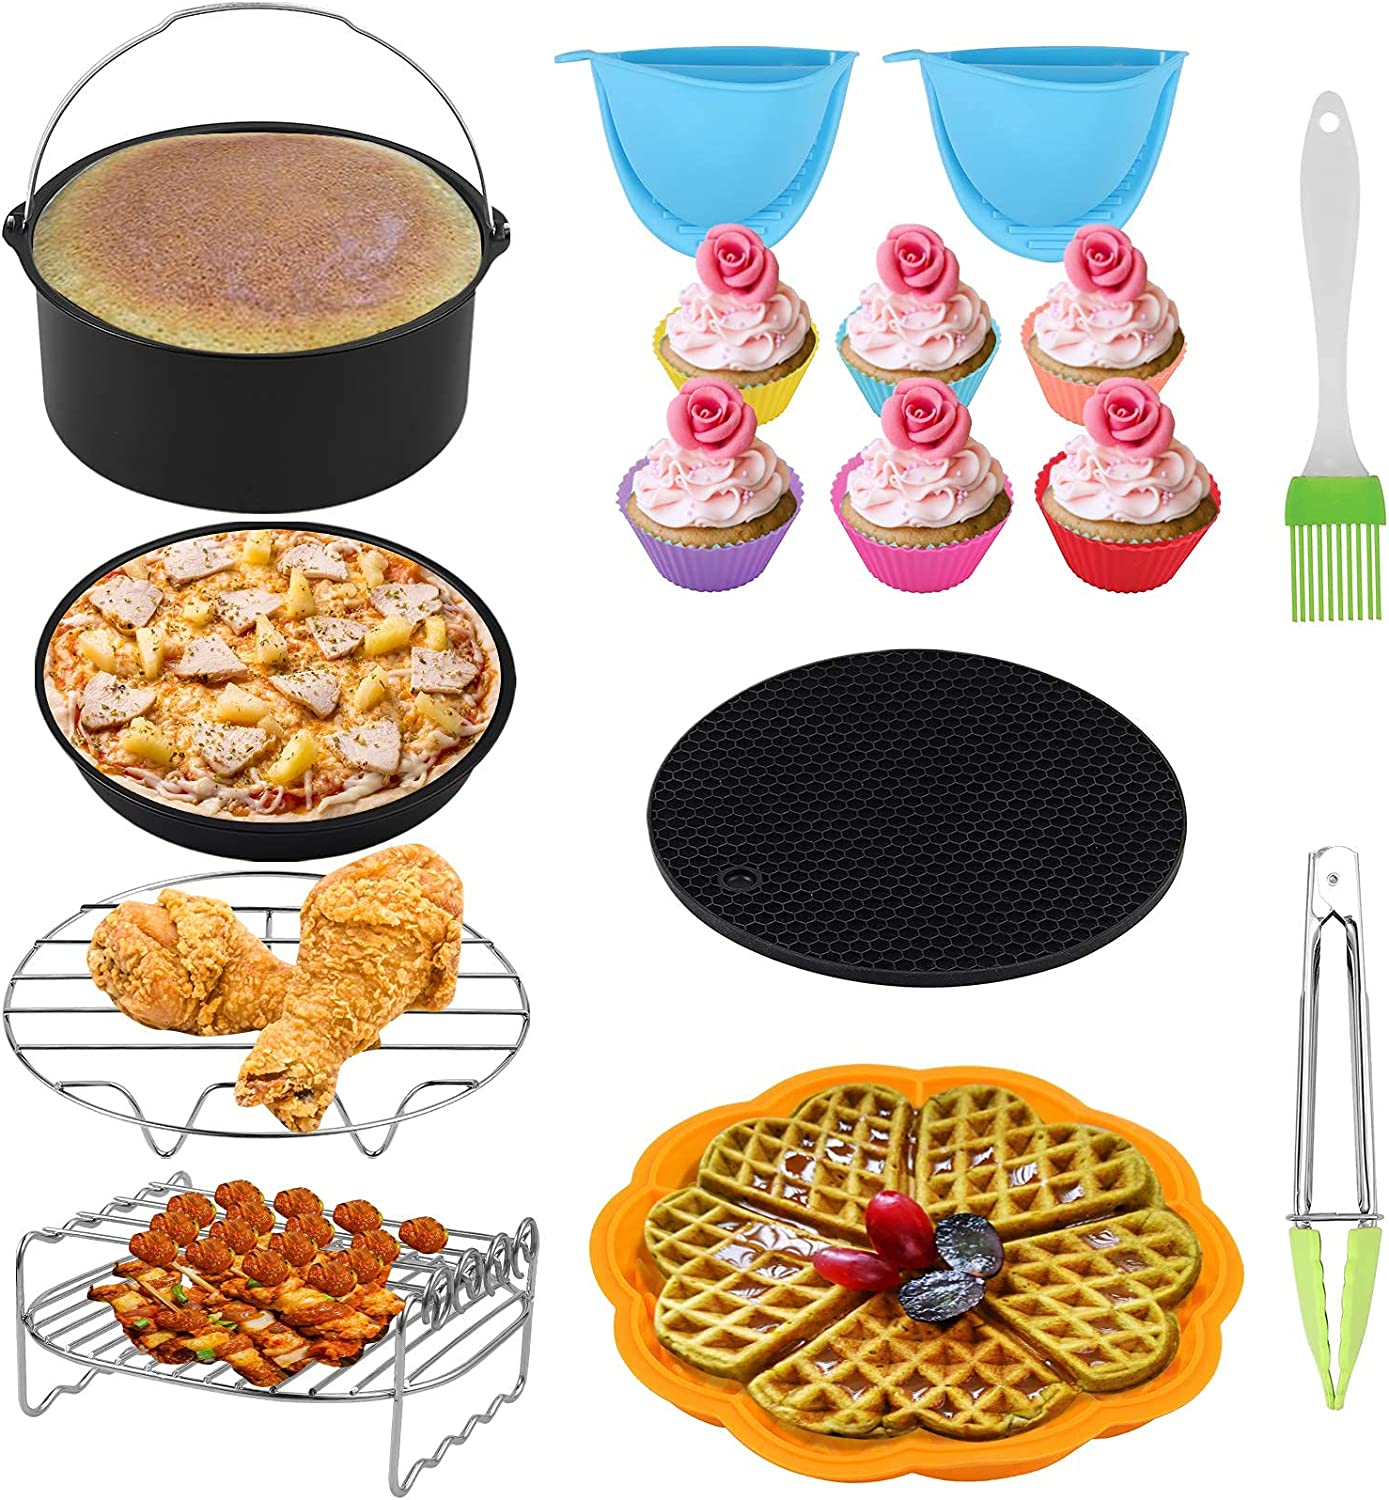 COLFULINE Air Fryer Accessories 11Sets 7 Inch, Air Fryer Basket Baking Pan,for Phillips, Gowise Universal XL Power Air Fryer Accessory Kit fit All 3.2QT-7.2QT